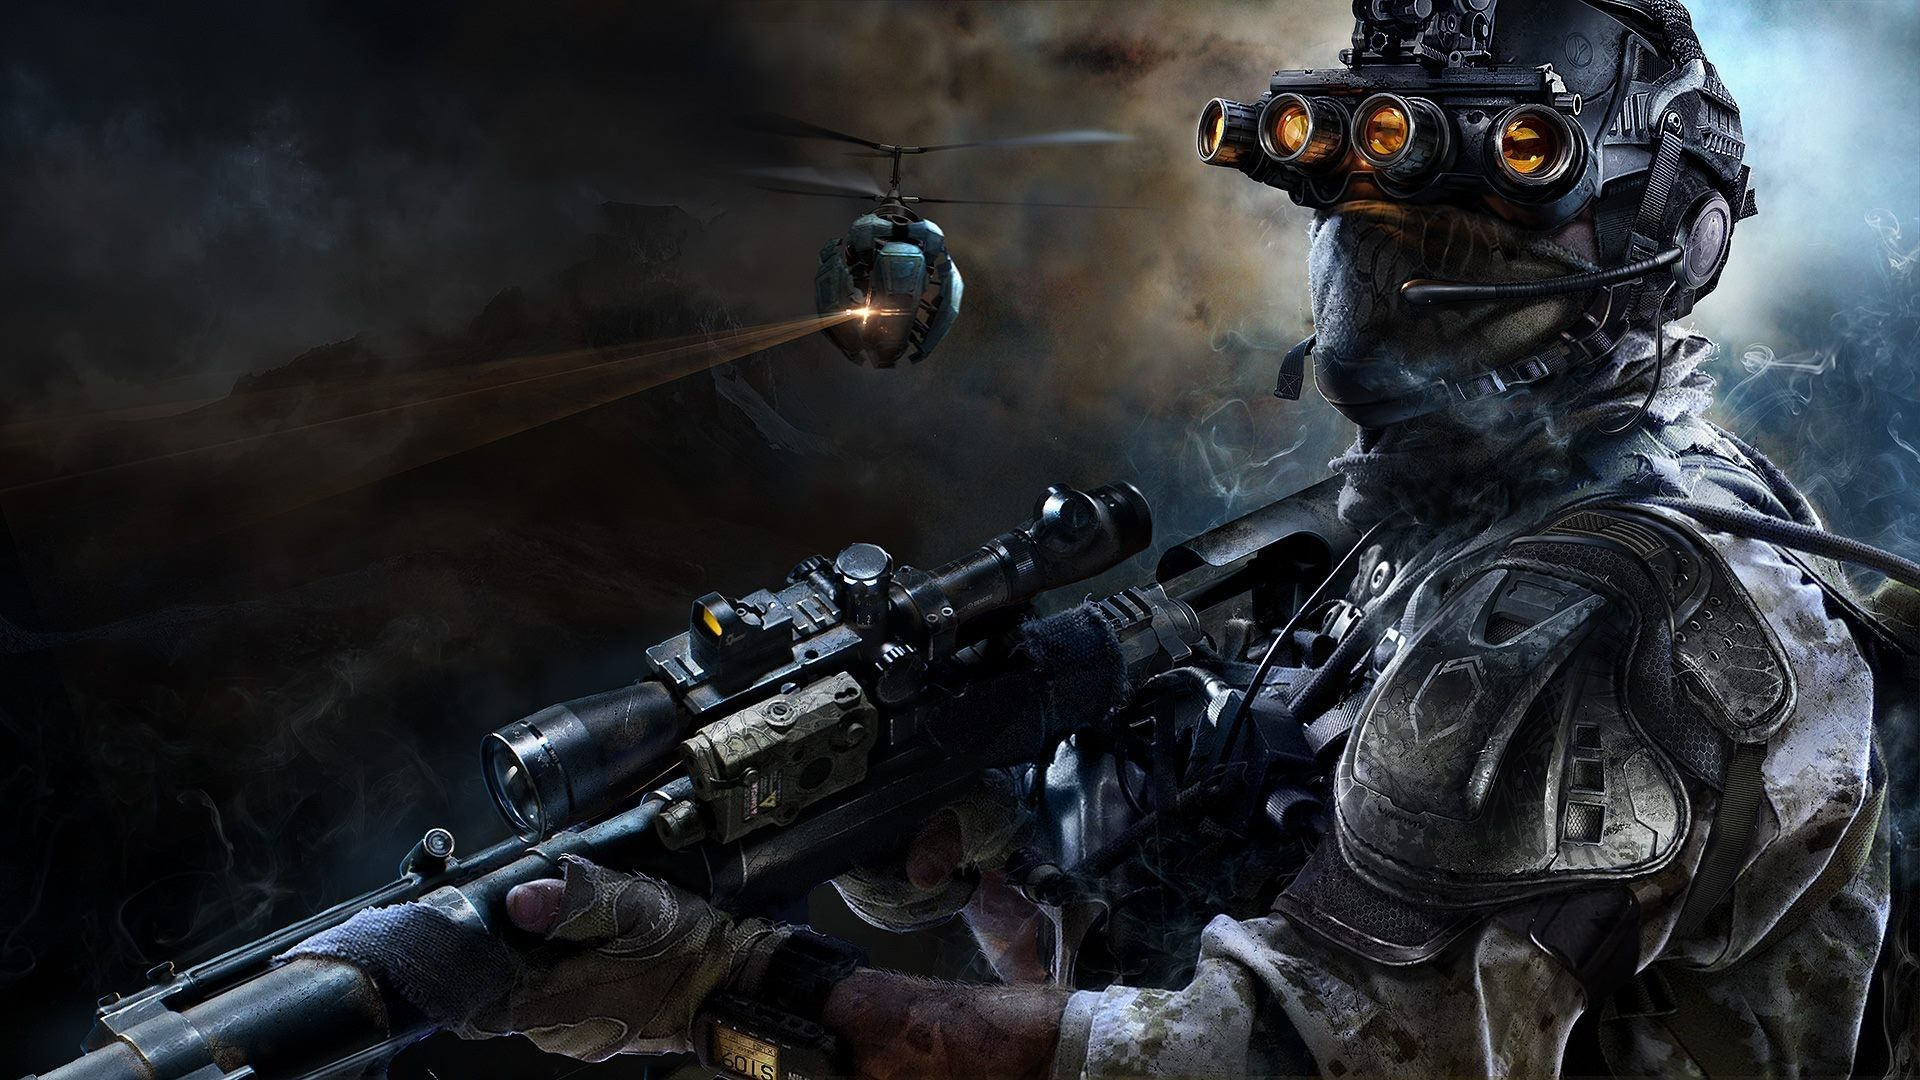 Sniper Ghost Warrior 3 Wallpapers Cool